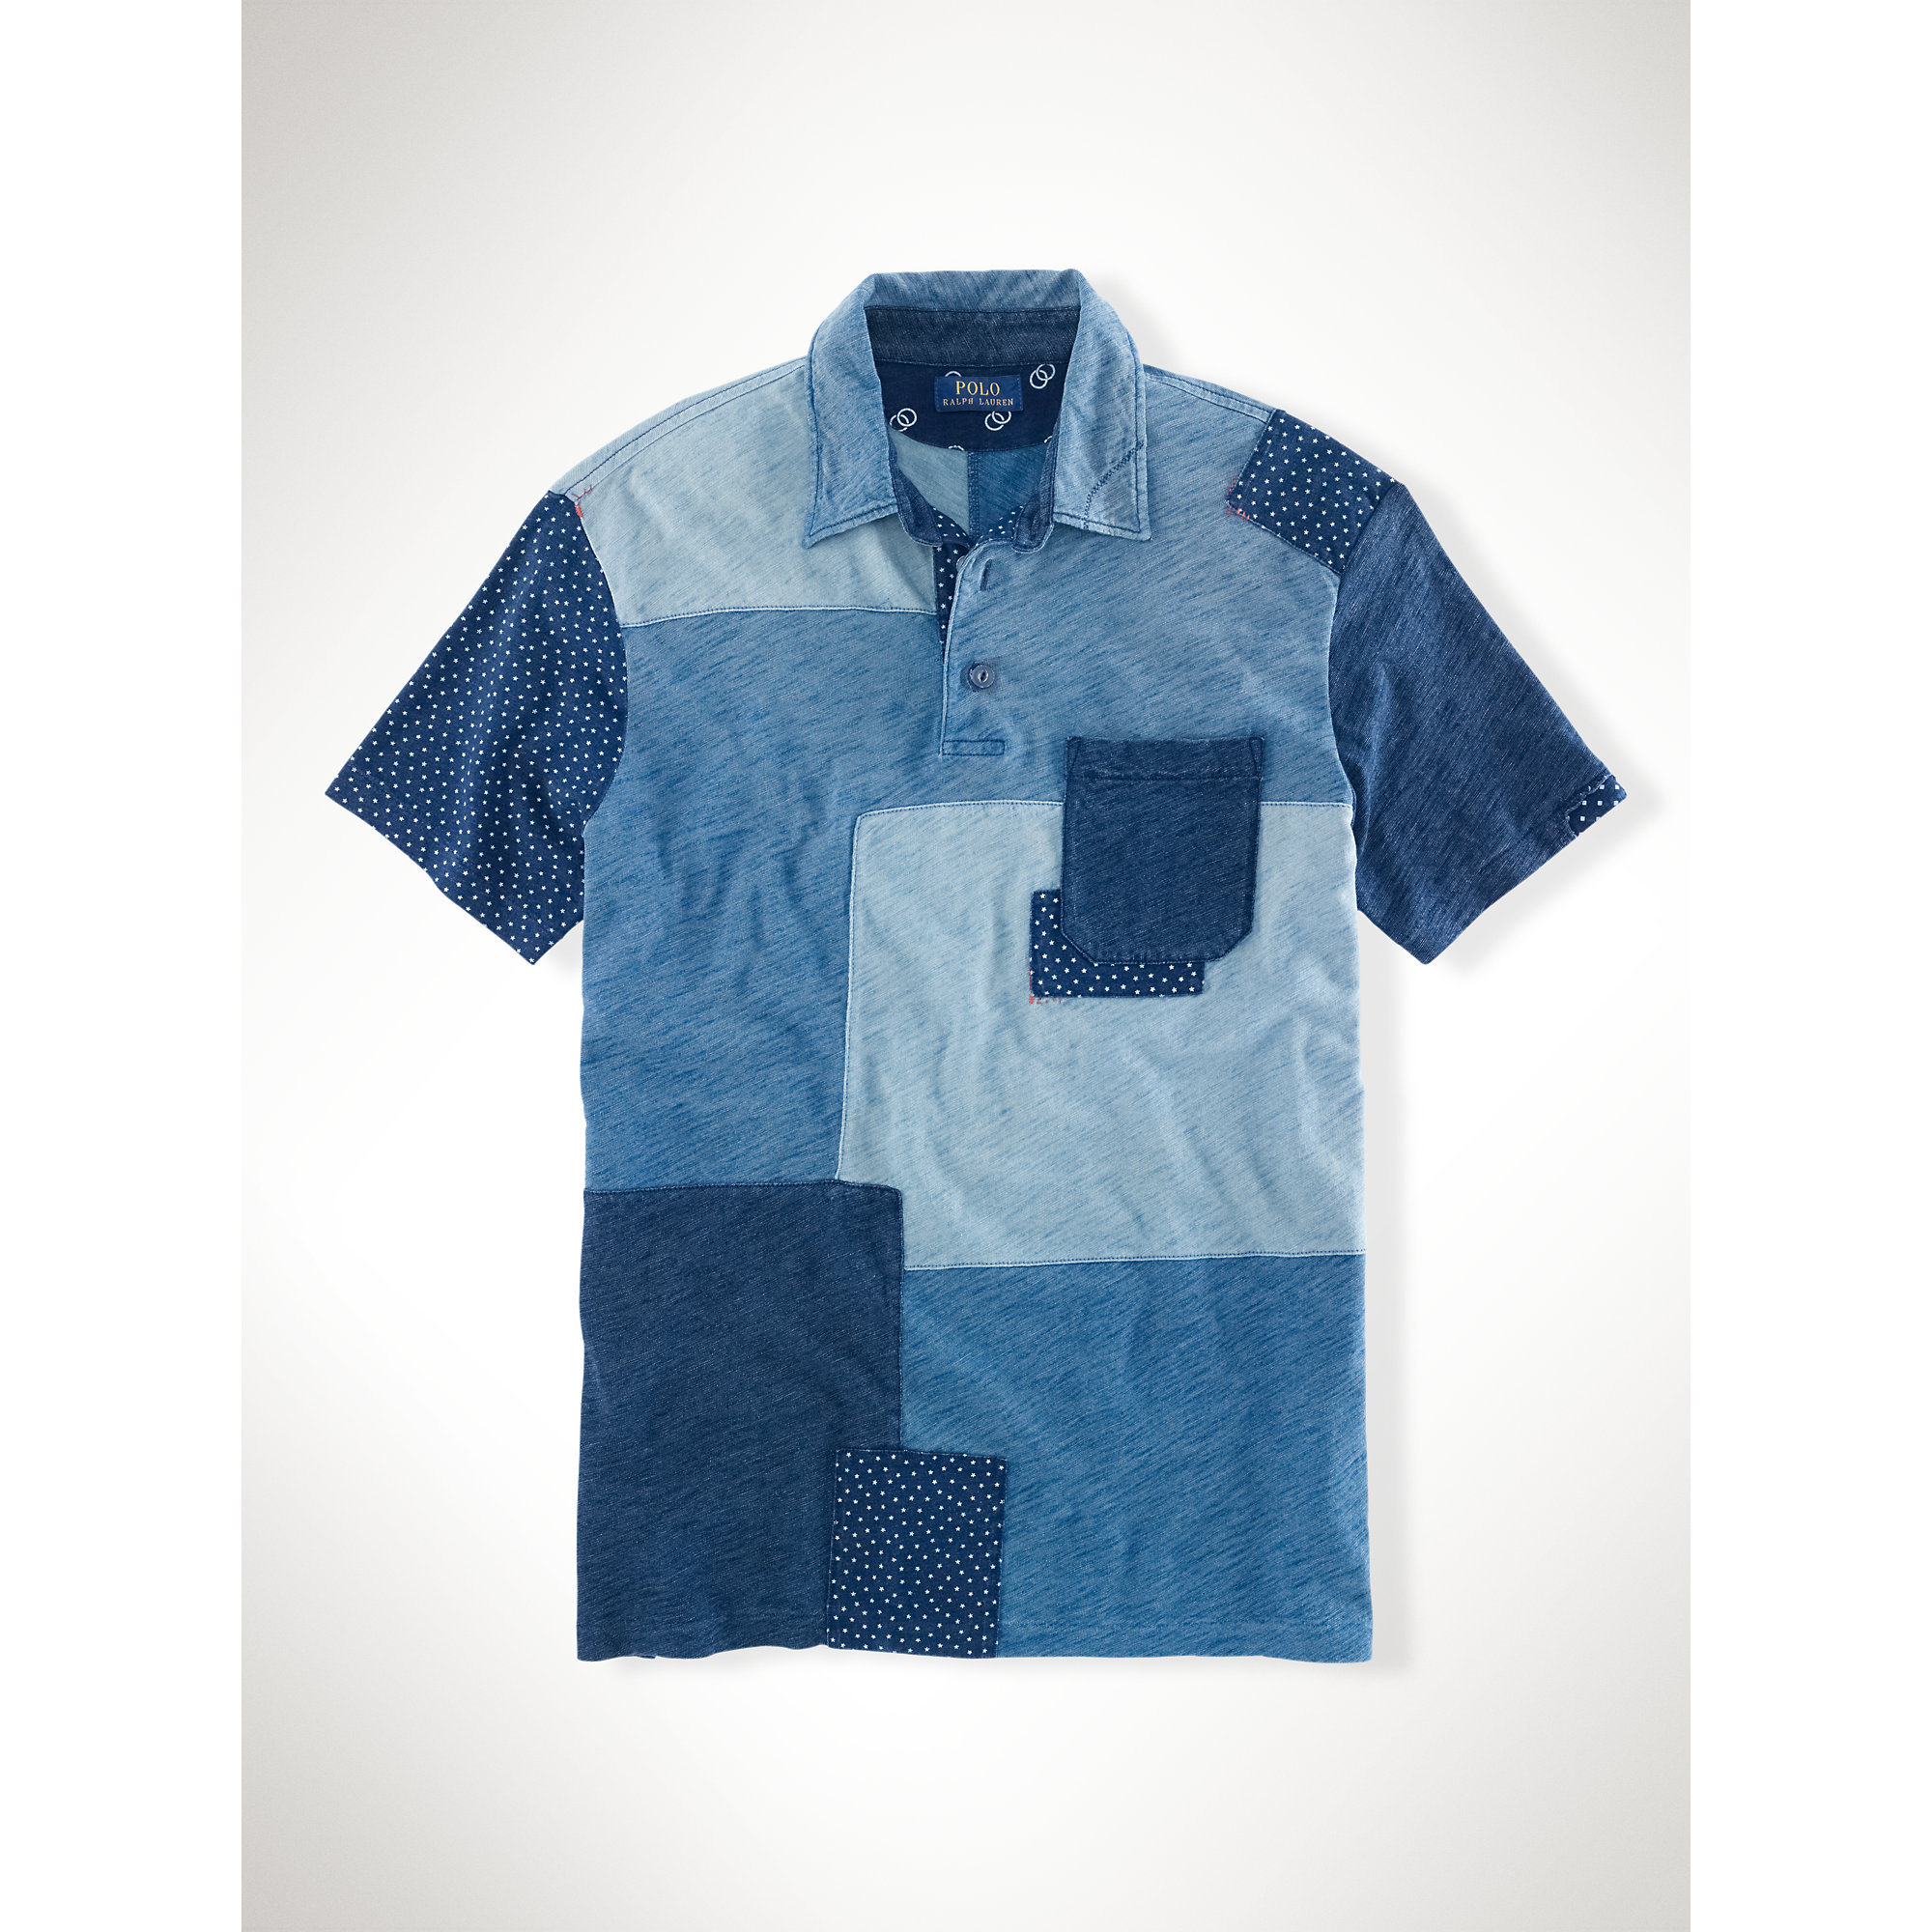 bbbf1293 ... clearance lyst polo ralph lauren indigo patchwork polo shirt in blue  for men 4e979 57822